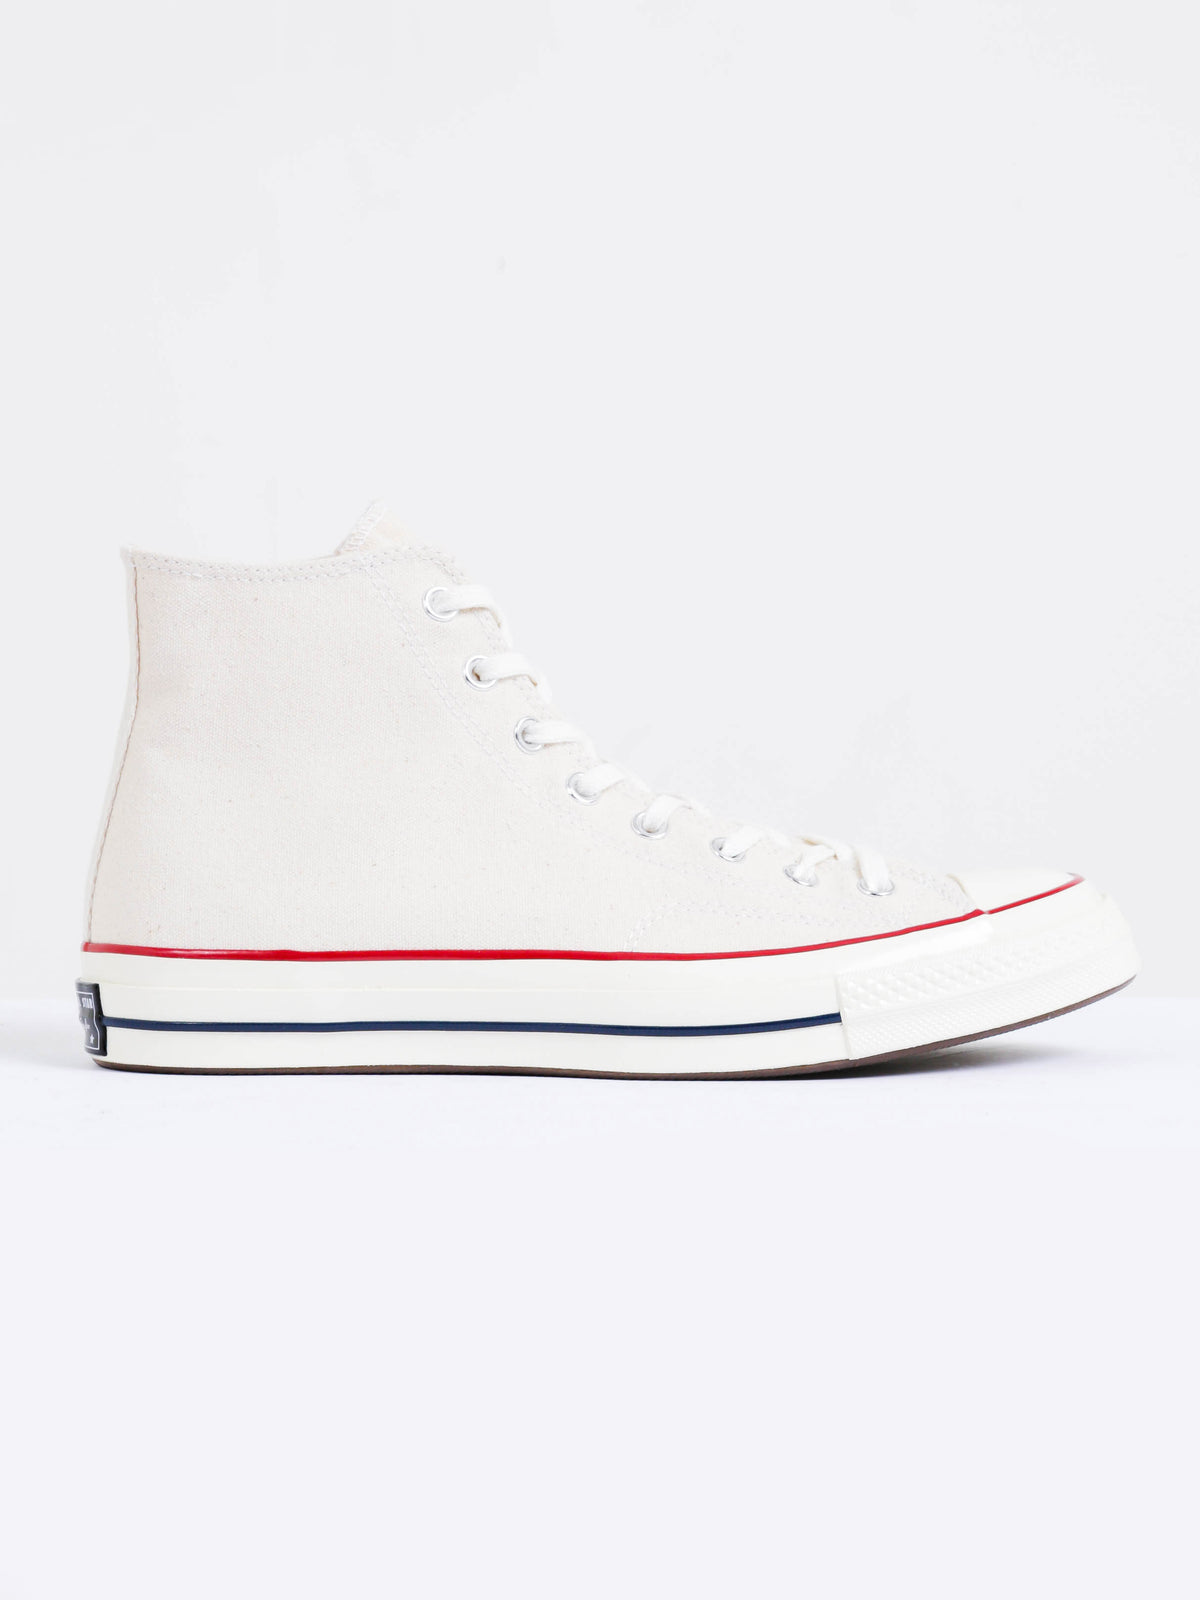 Unisex Chuck Taylor All Star 70 High Top Sneakers in Parchment